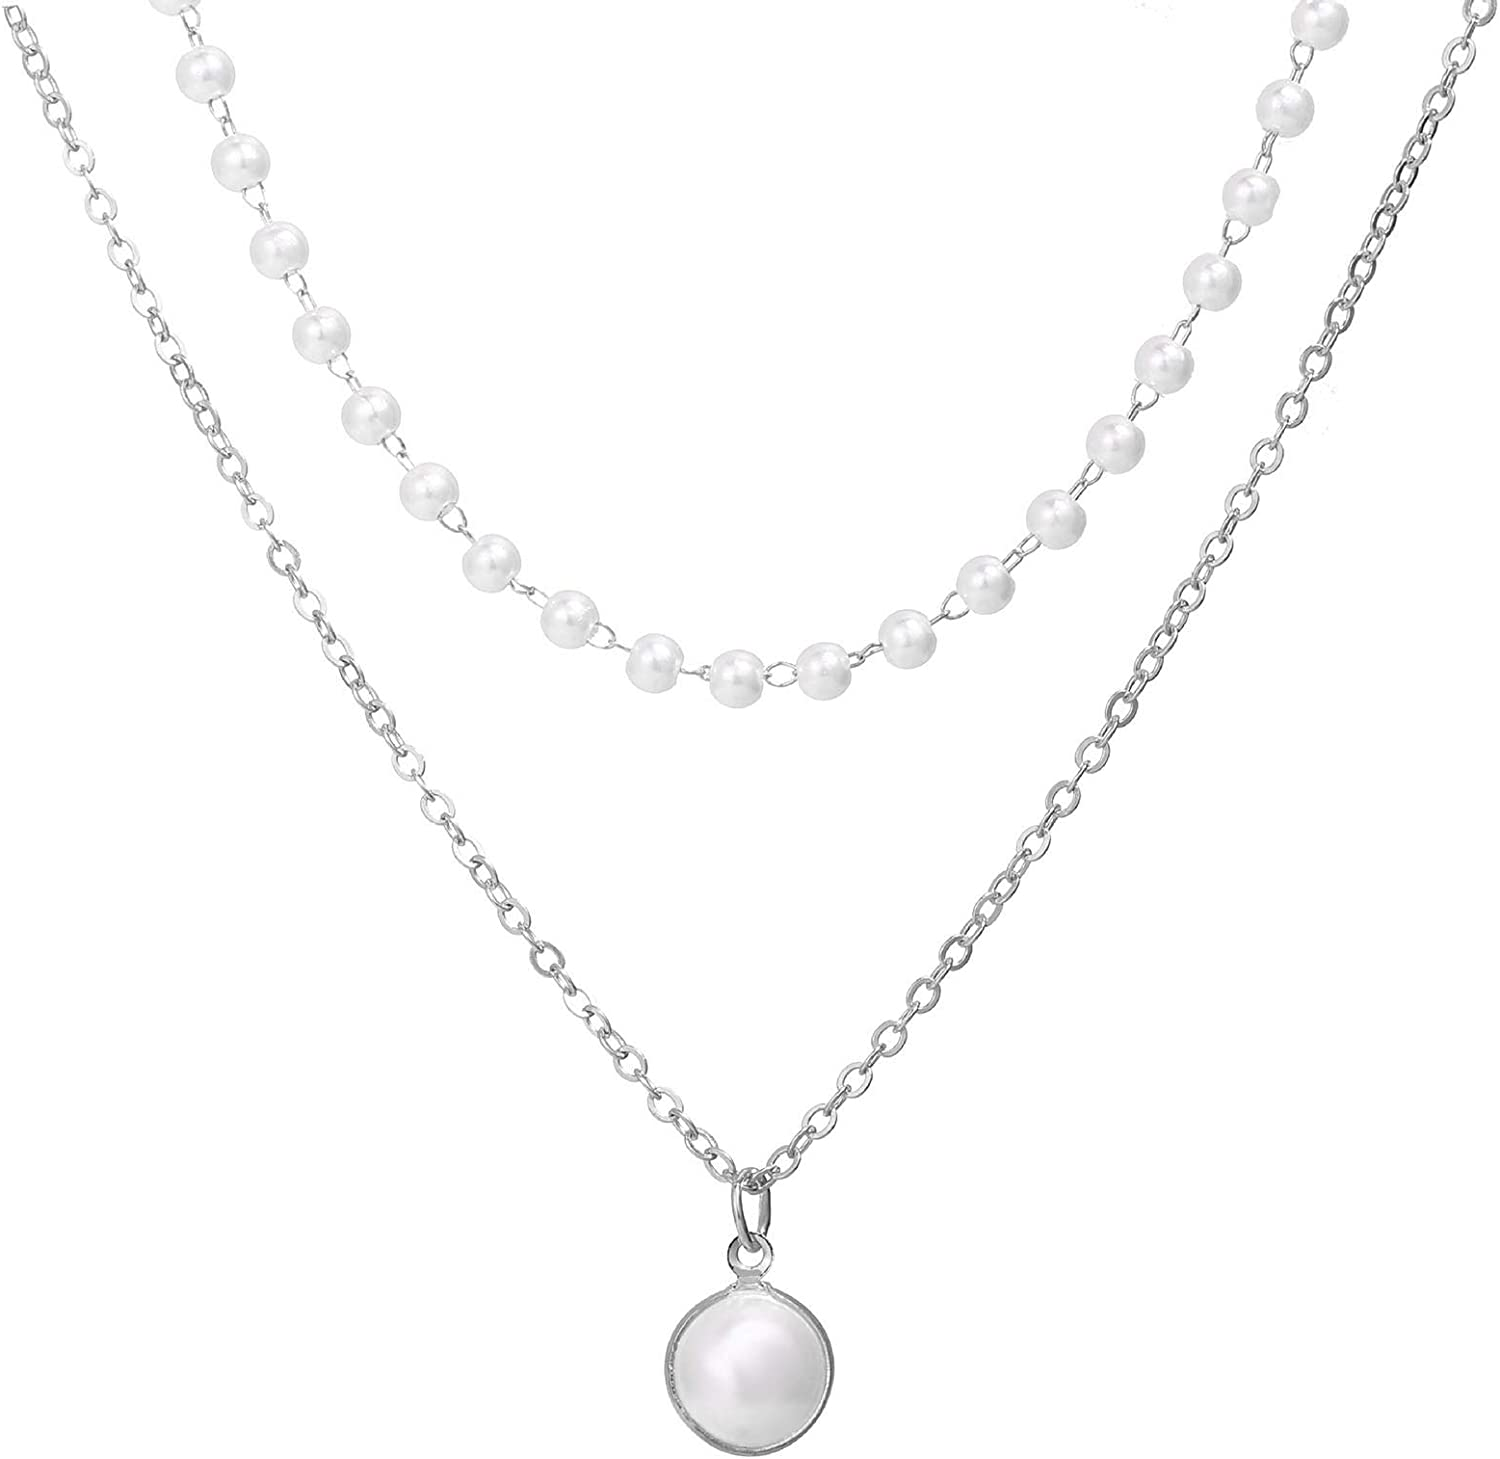 Pearl Necklace,Pearl Necklace Double-layer Simple Alloy Female Clavicle Chain for Party - Golden